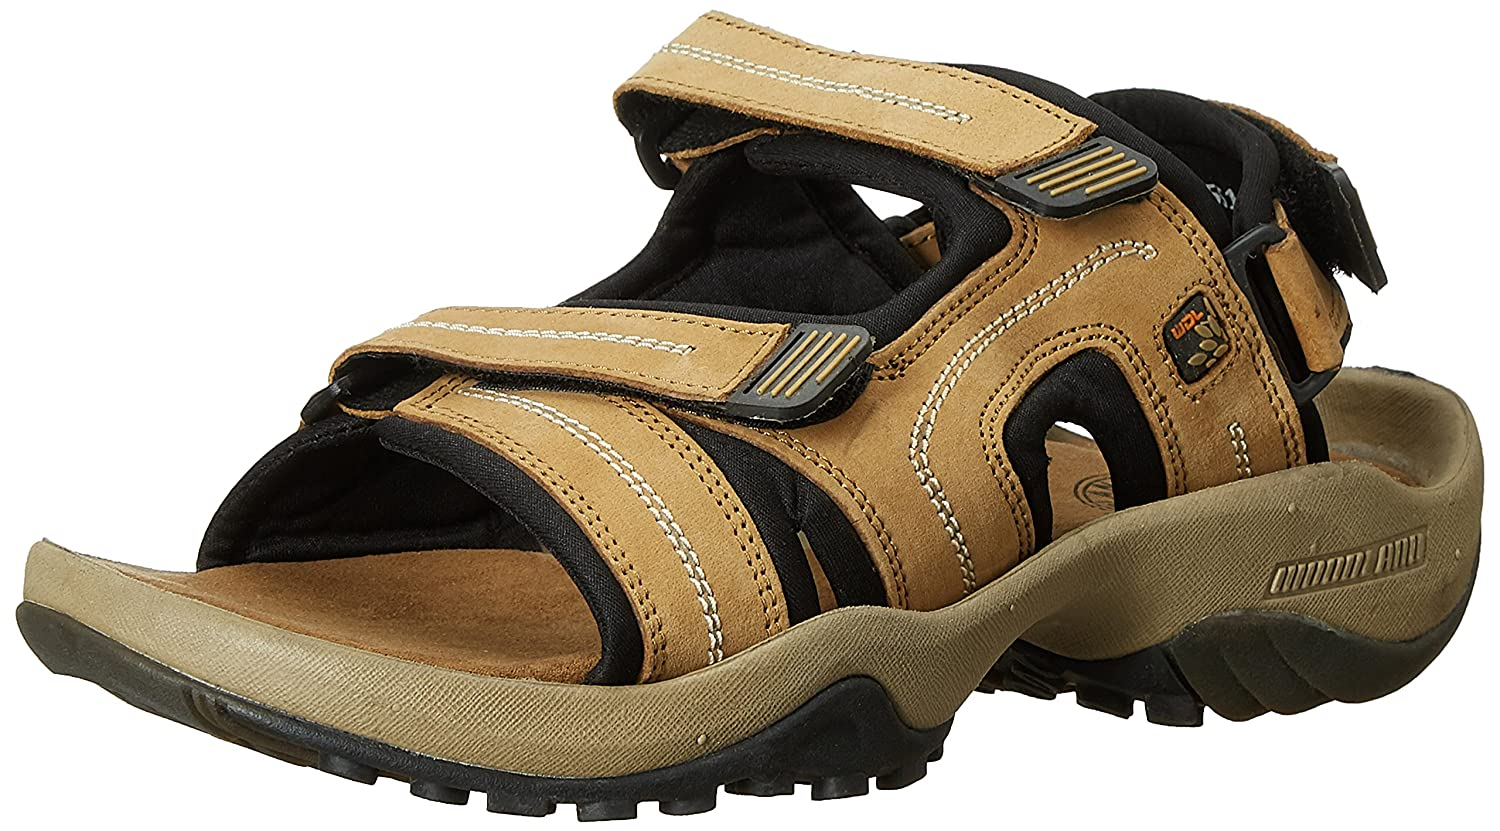 Woodland Men's Leather Sandals and